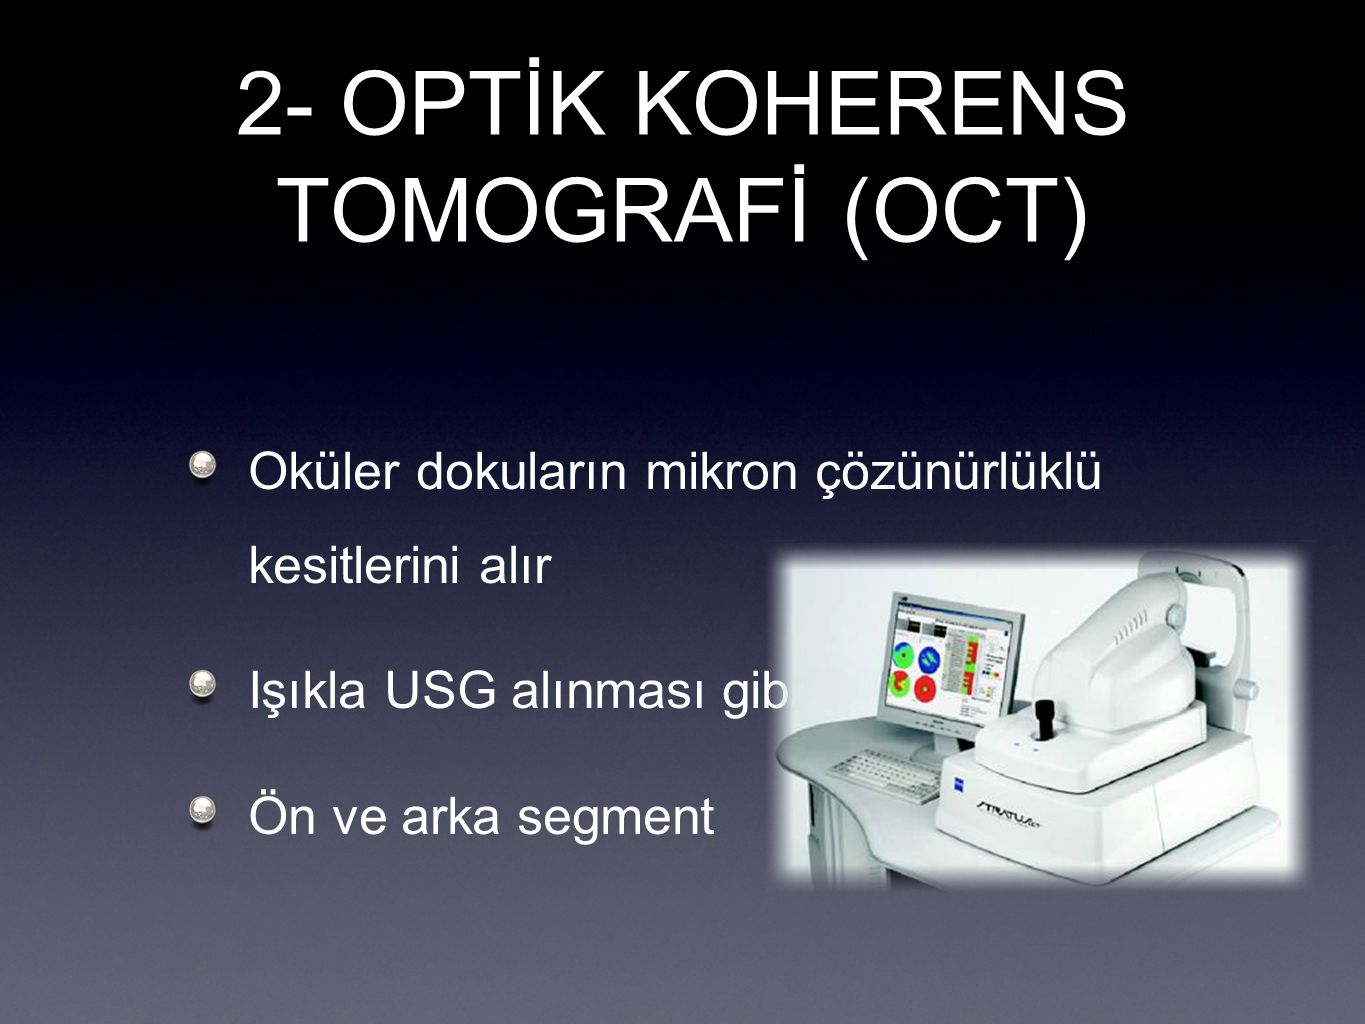 2- OPTİK KOHERENS TOMOGRAFİ (OCT)